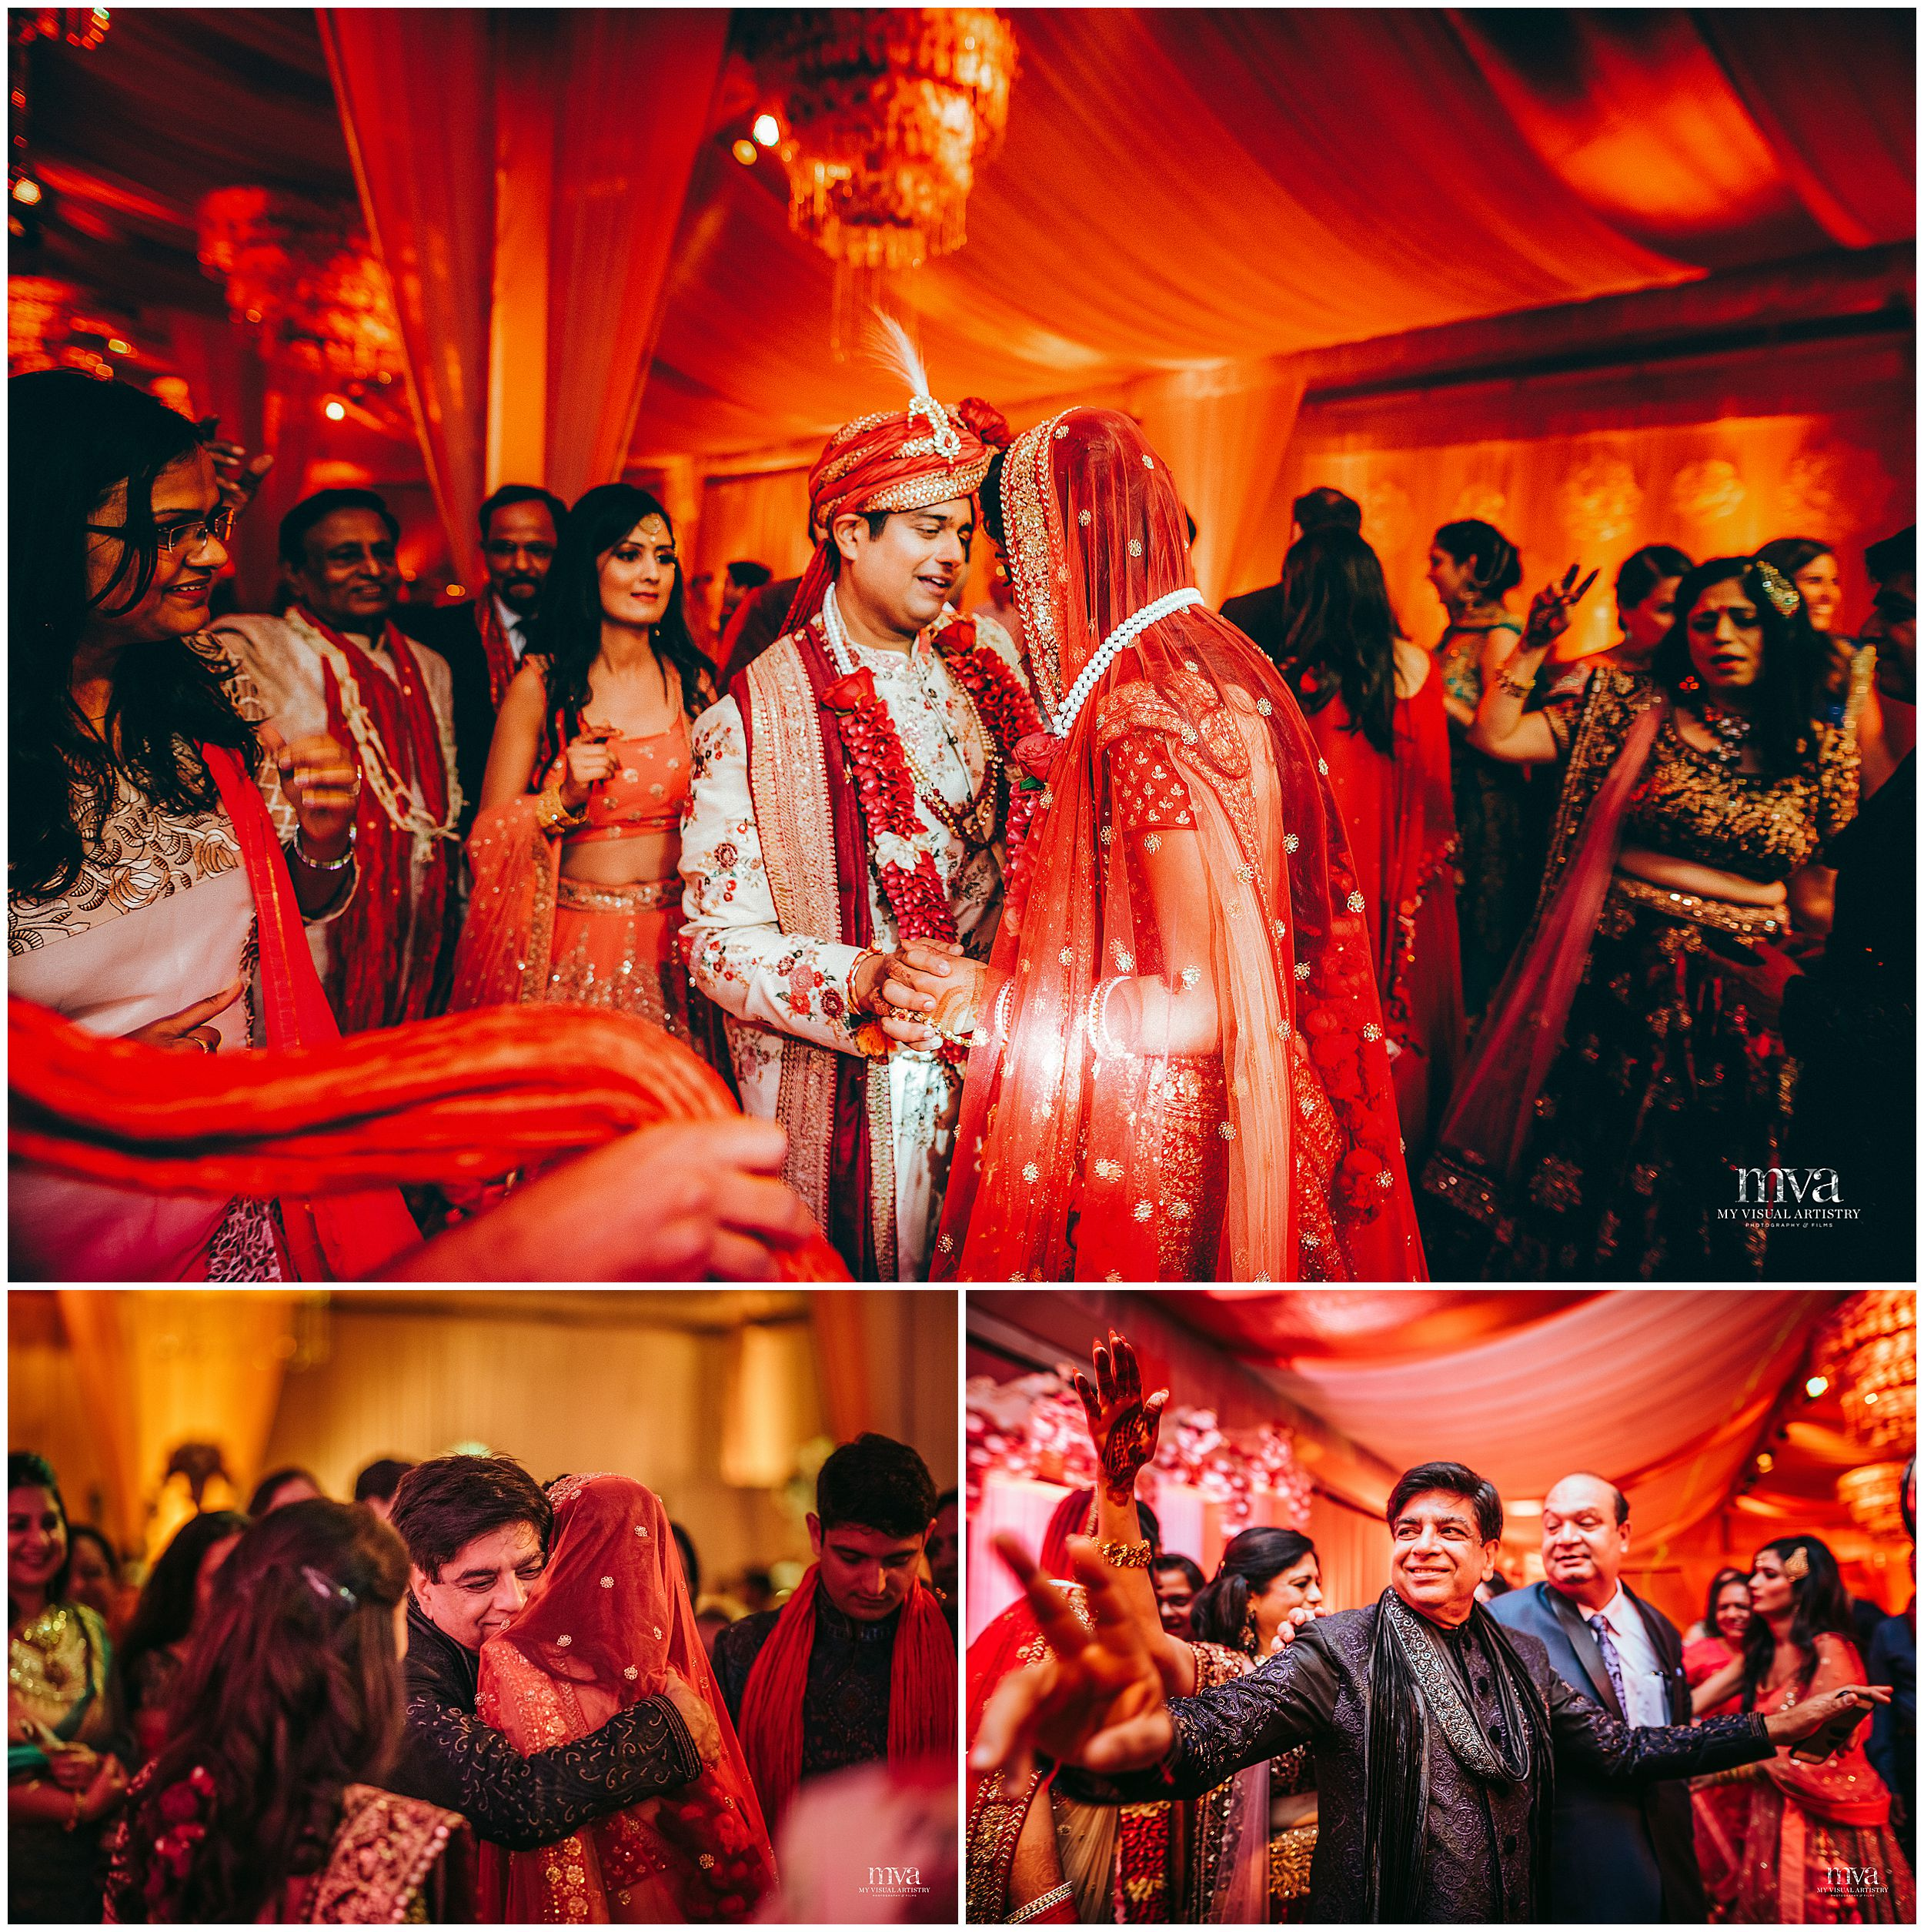 SIDDARTH_SAKSHI_MYVISUALARTISTRY_WEDDING_PHOTOGRAPHY_MVA_EROSHANGRILA_DELHI_0039.jpg